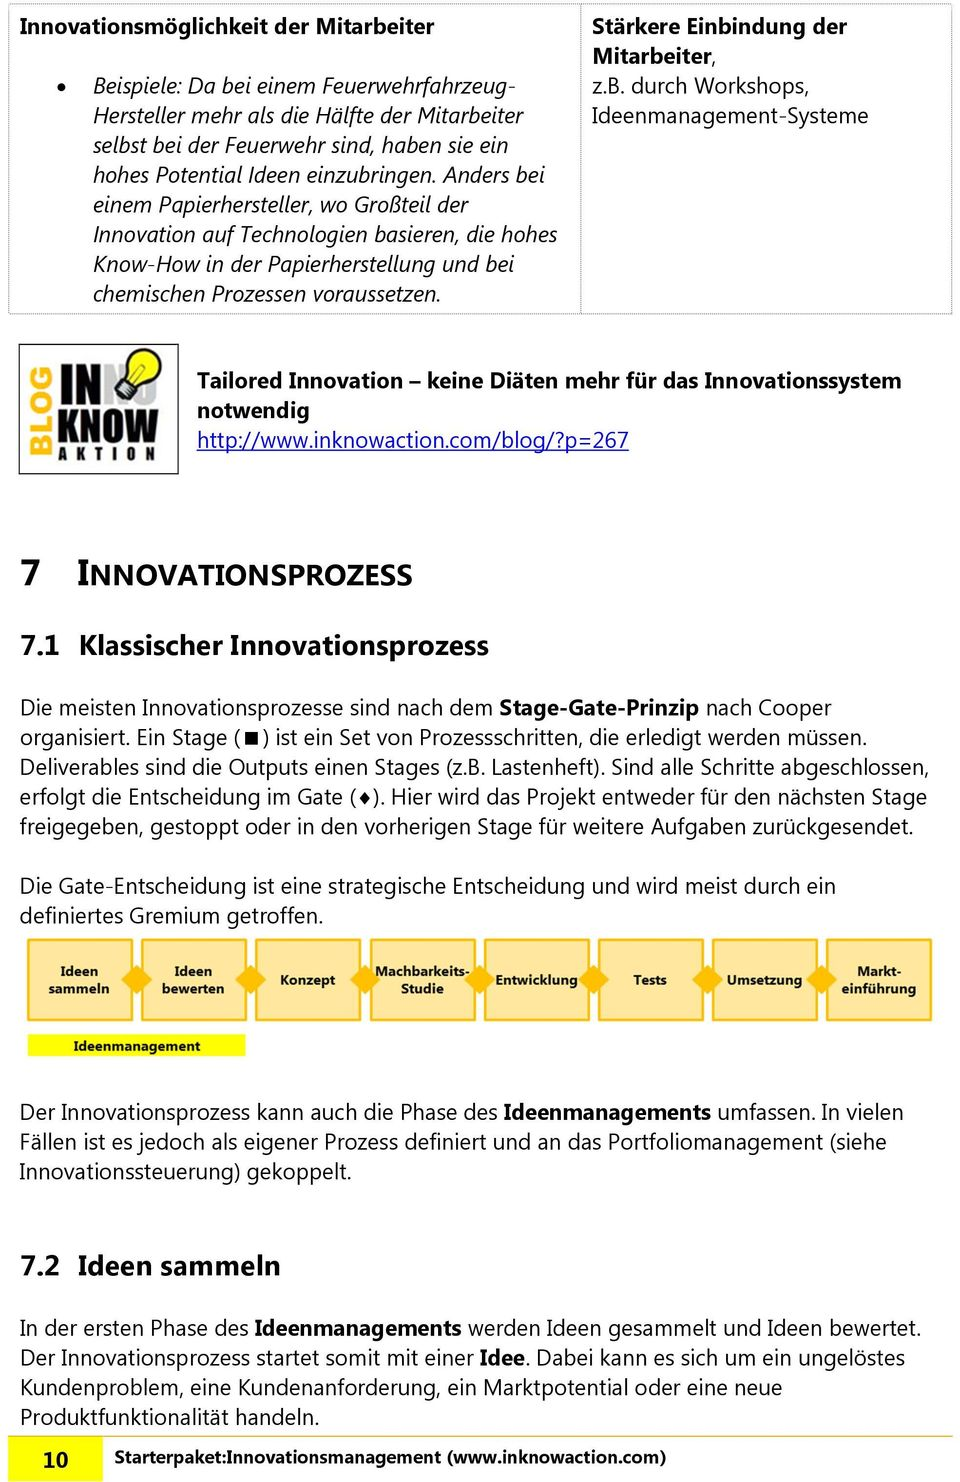 Stärkere Einbindung der Mitarbeiter, z.b. durch Workshops, Ideenmanagement-Systeme Tailored Innovation keine Diäten mehr für das Innovationssystem notwendig http://www.inknowaction.com/blog/?